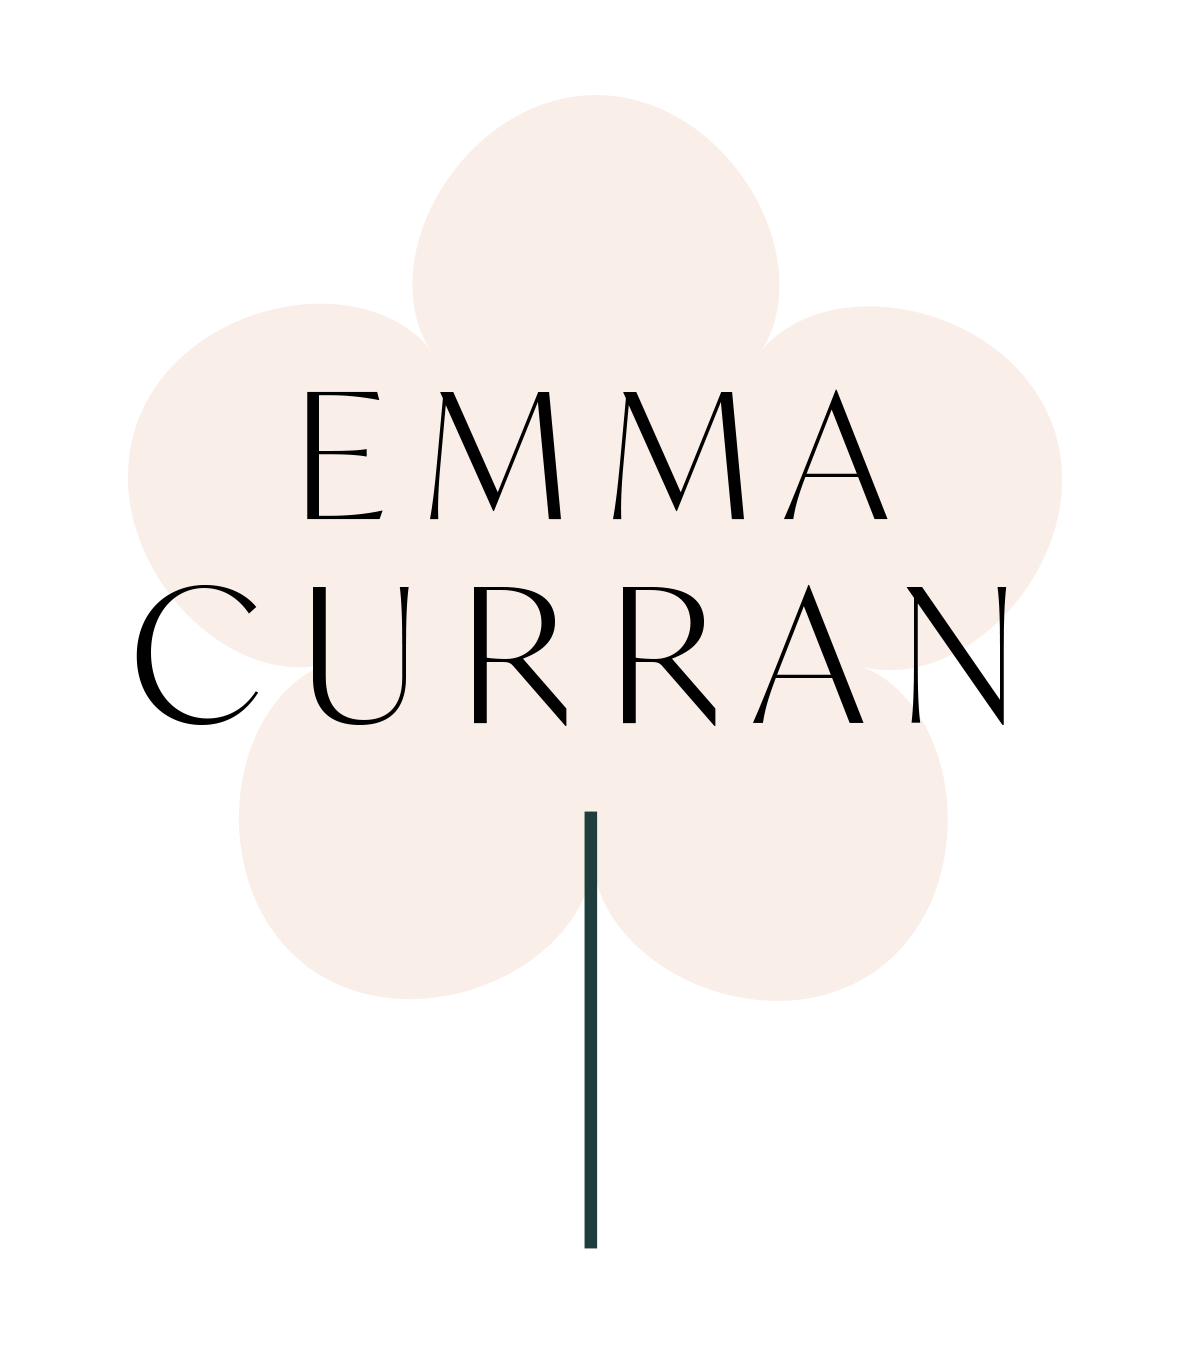 Emma Curran | Graphic Designer & Lifestyle Blogger | Essex, London & Beyond